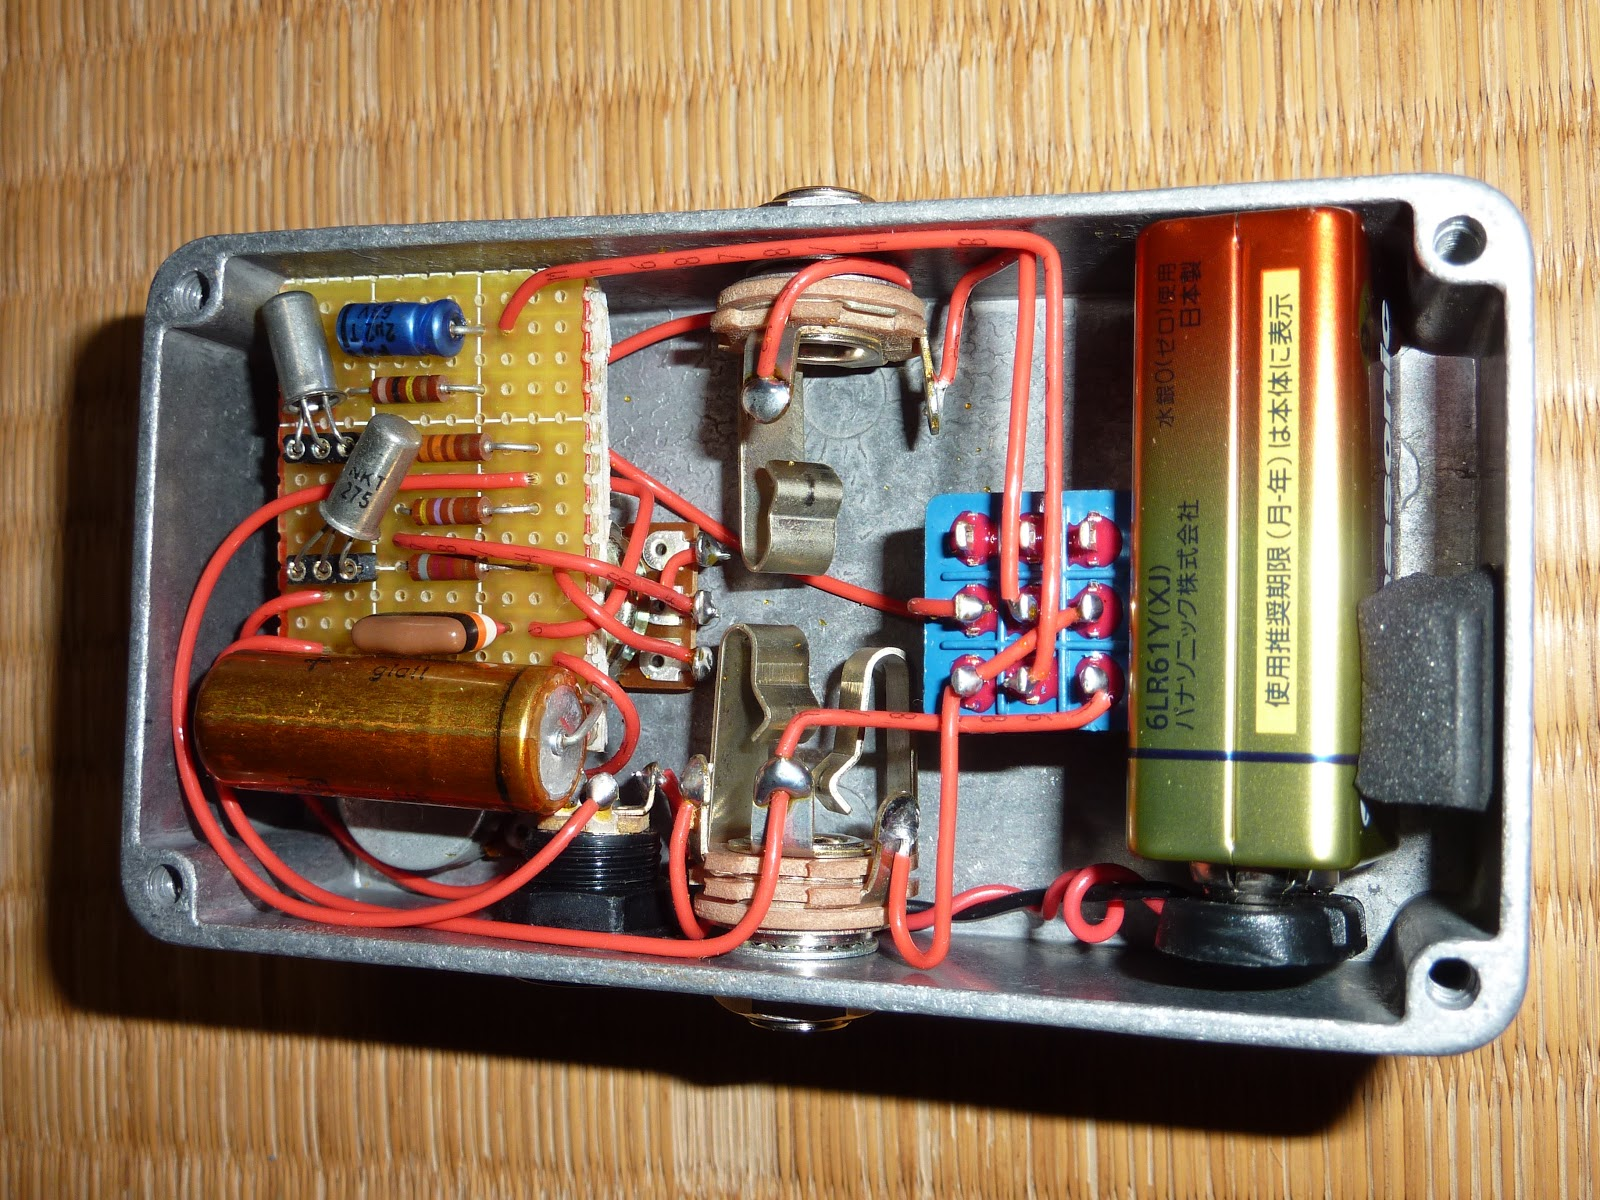 Shibuyagakki Silver Face Germanium Nkt 275 Fuzz For Sale Offers Circuit This Is A Very Lightly Used Example And In Condition Complete With Original Box No Velcro Works Perfectly Email Any Questions Or